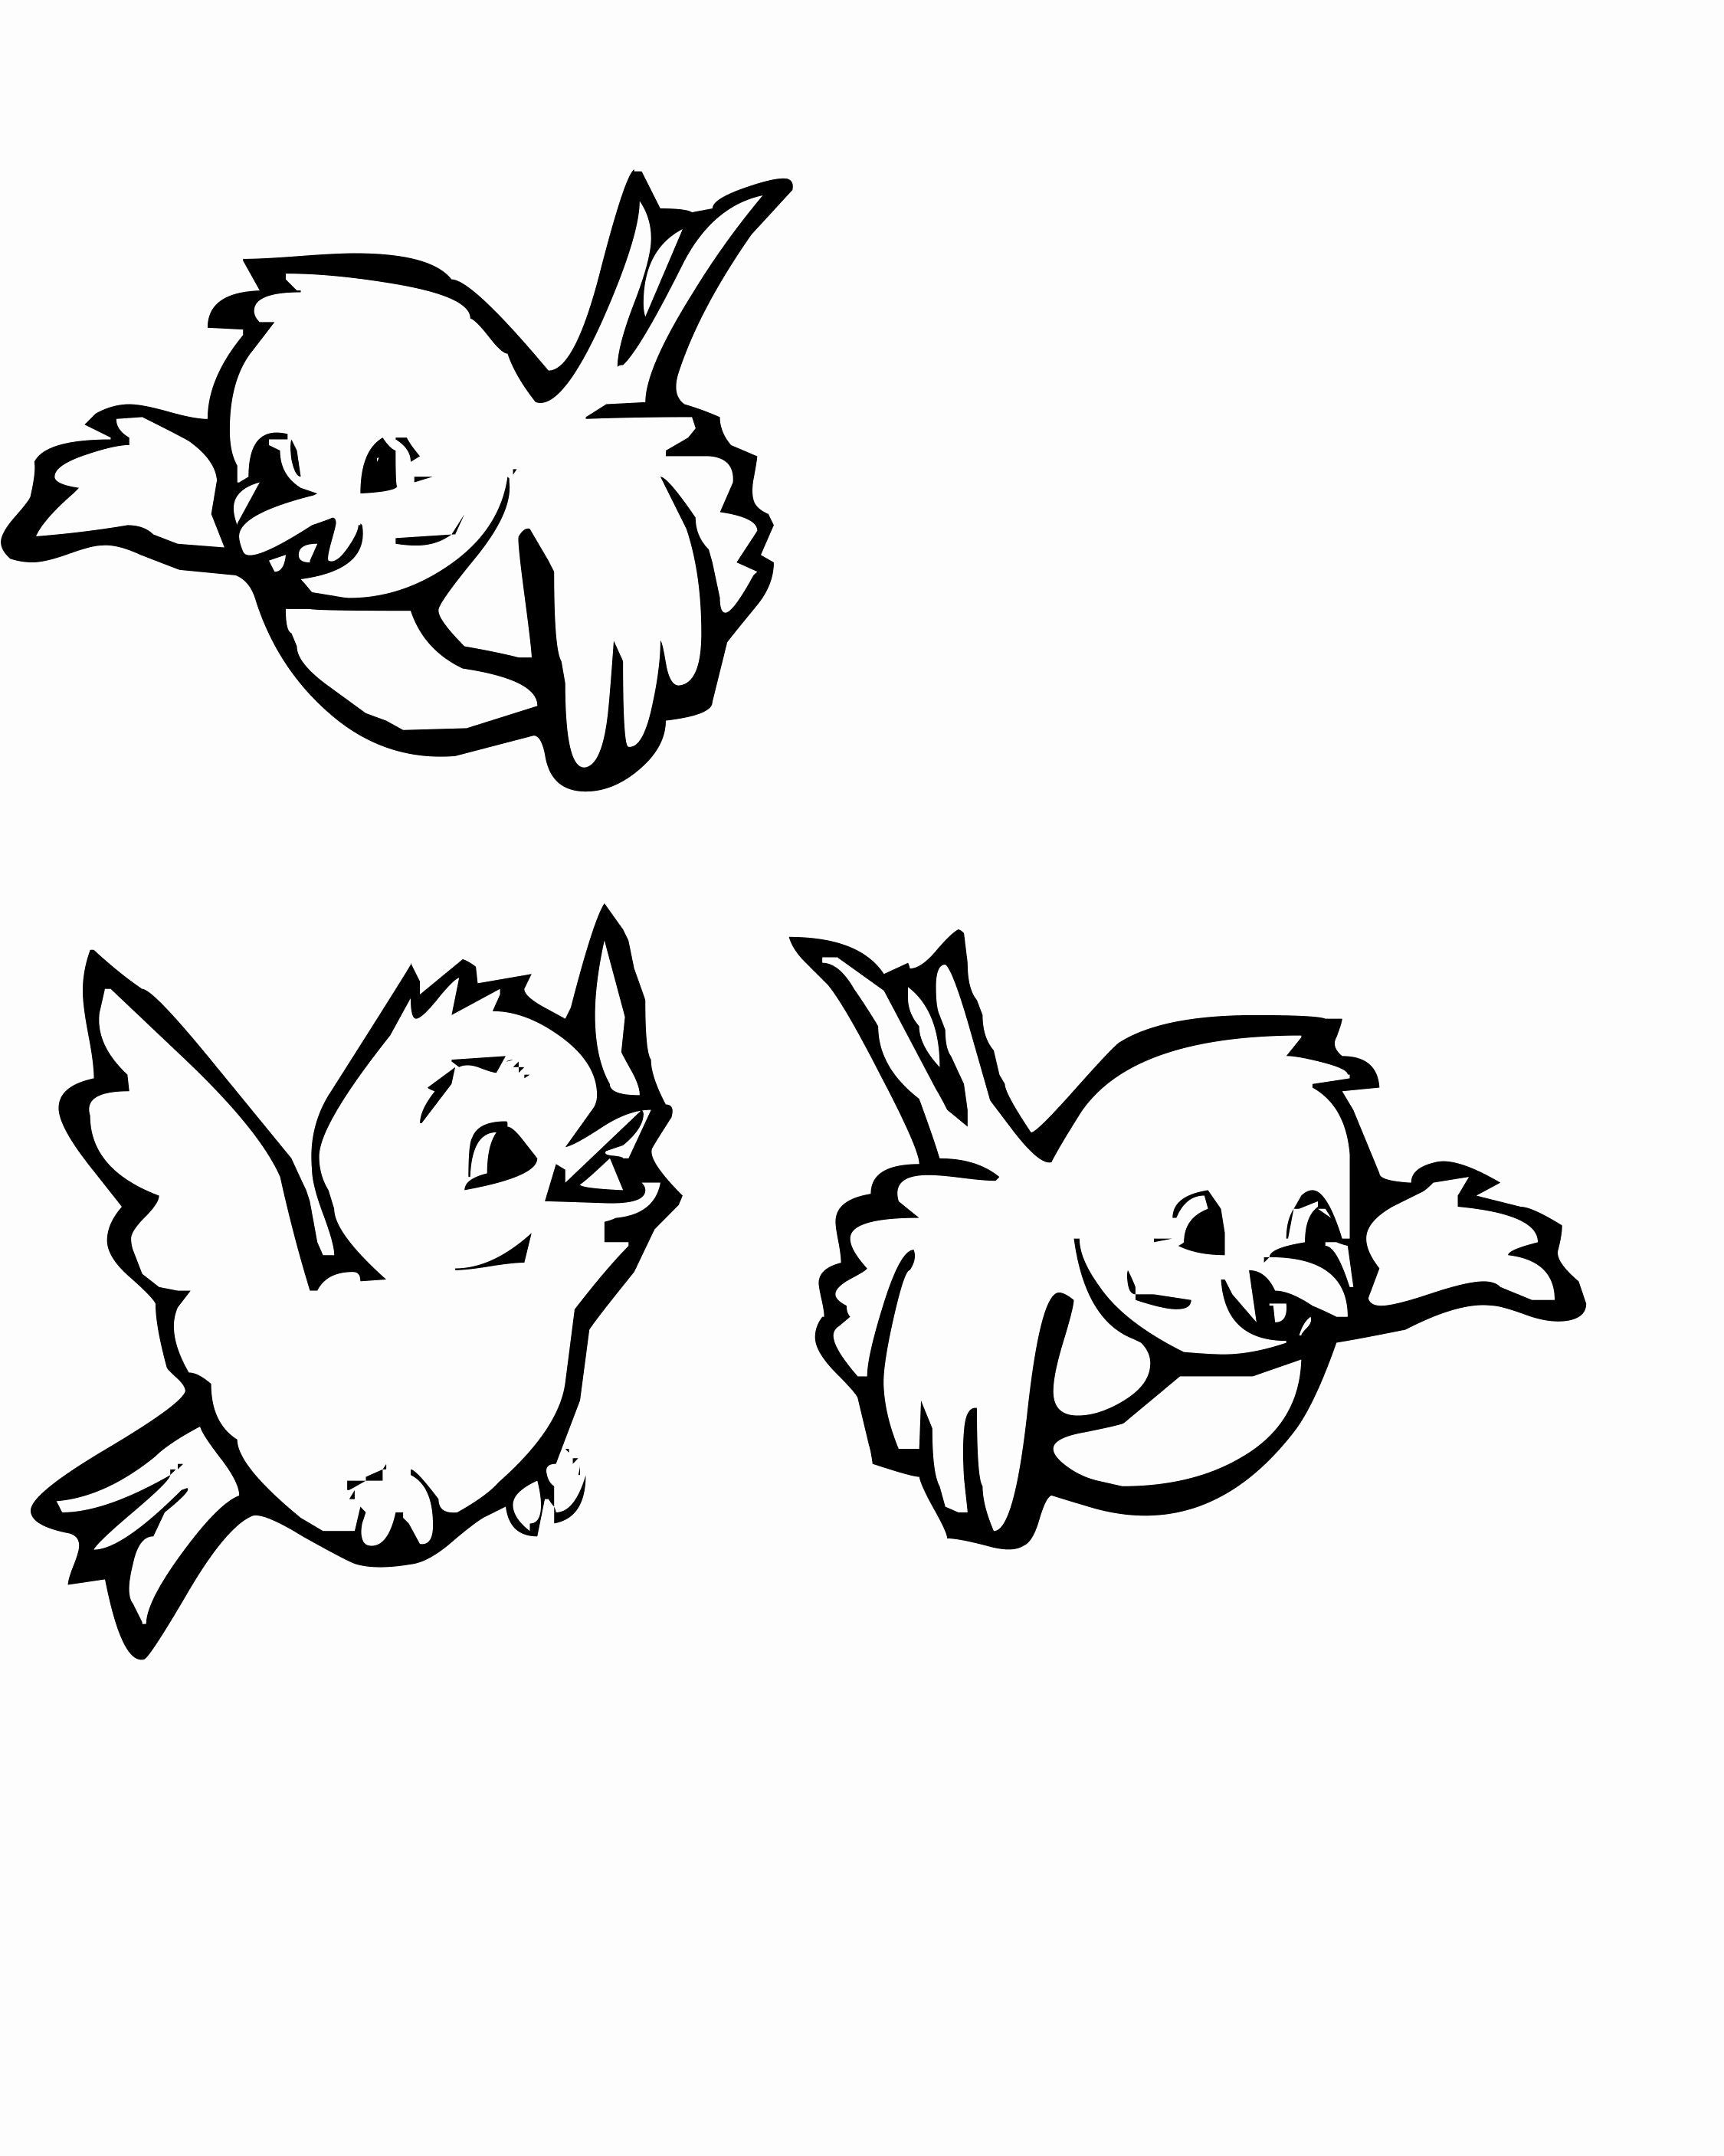 Angry Birds Space Coloring Games Online New 25 Birds Coloring Pages For Kids Timykids Animal Coloring Pages Unicorn Coloring Pages Love Coloring Pages